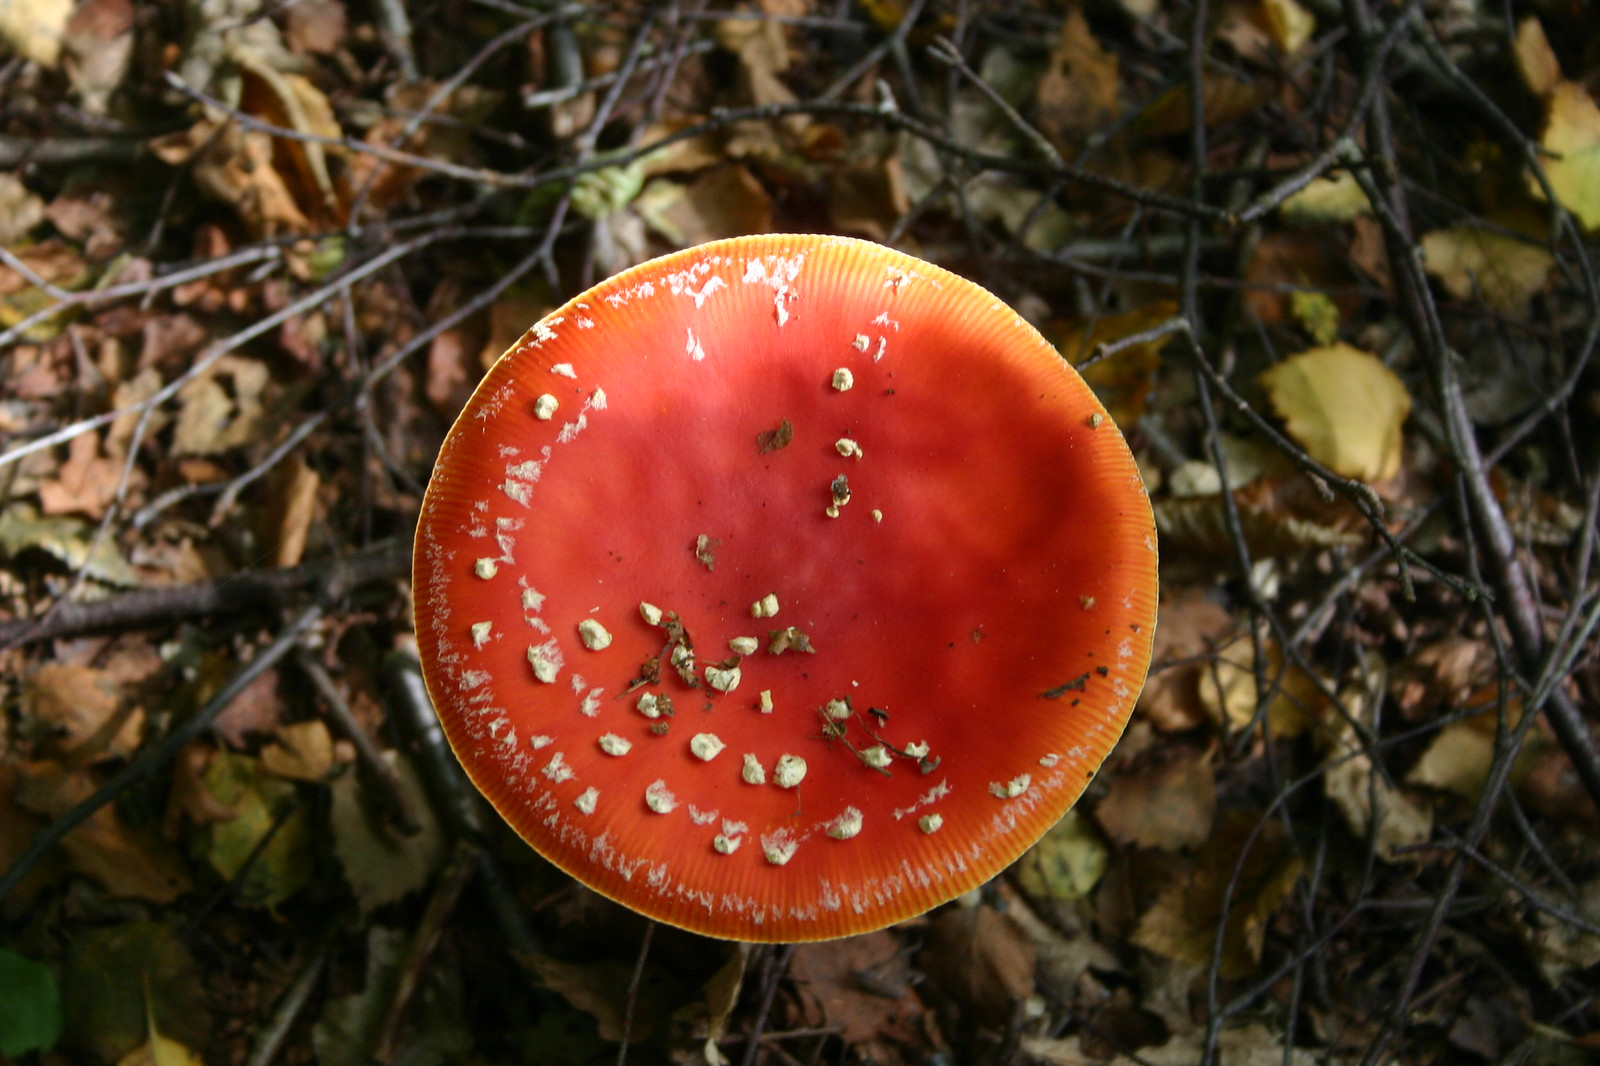 SWC 185 October 6th 2013 Fly Agaric from above